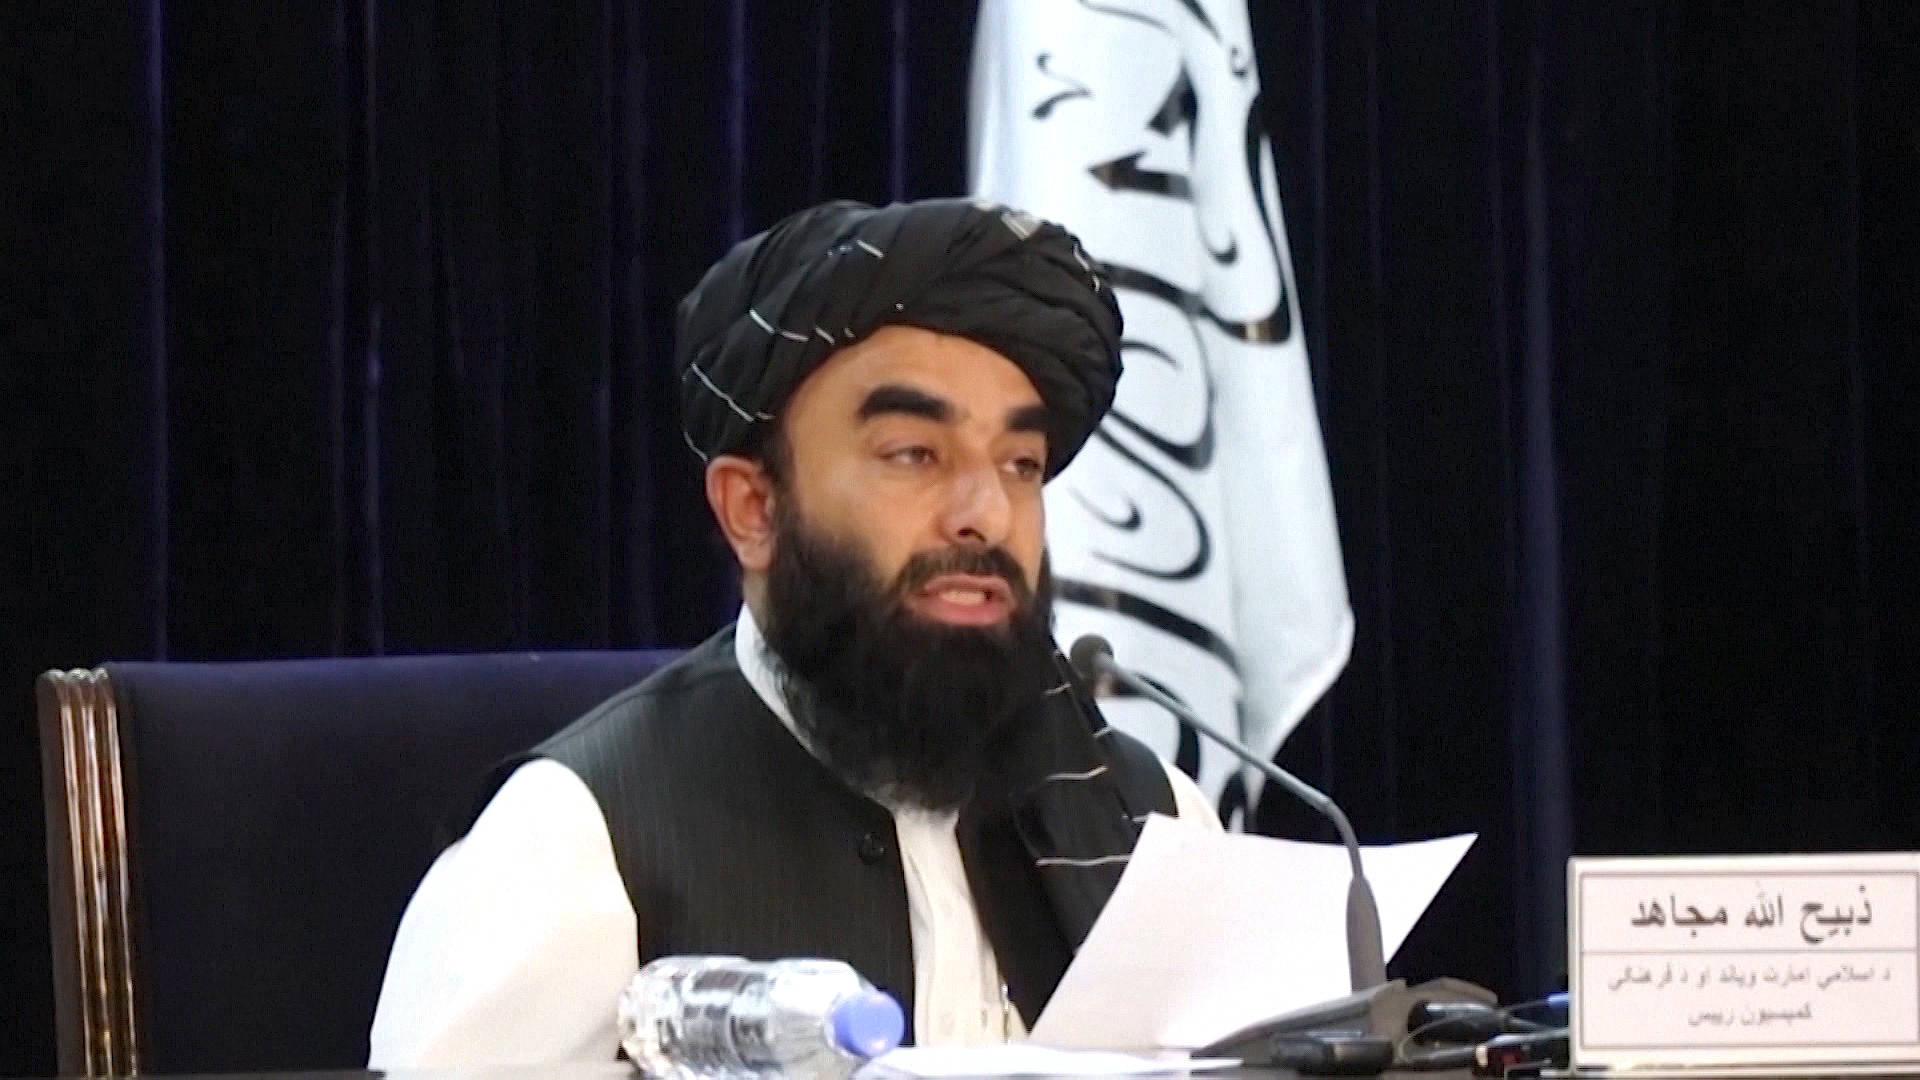 """Read more about the article Taliban's New Acting Government Filled with Hard-Liners, No Women Is """"Disappointing"""" as Protests Grow"""